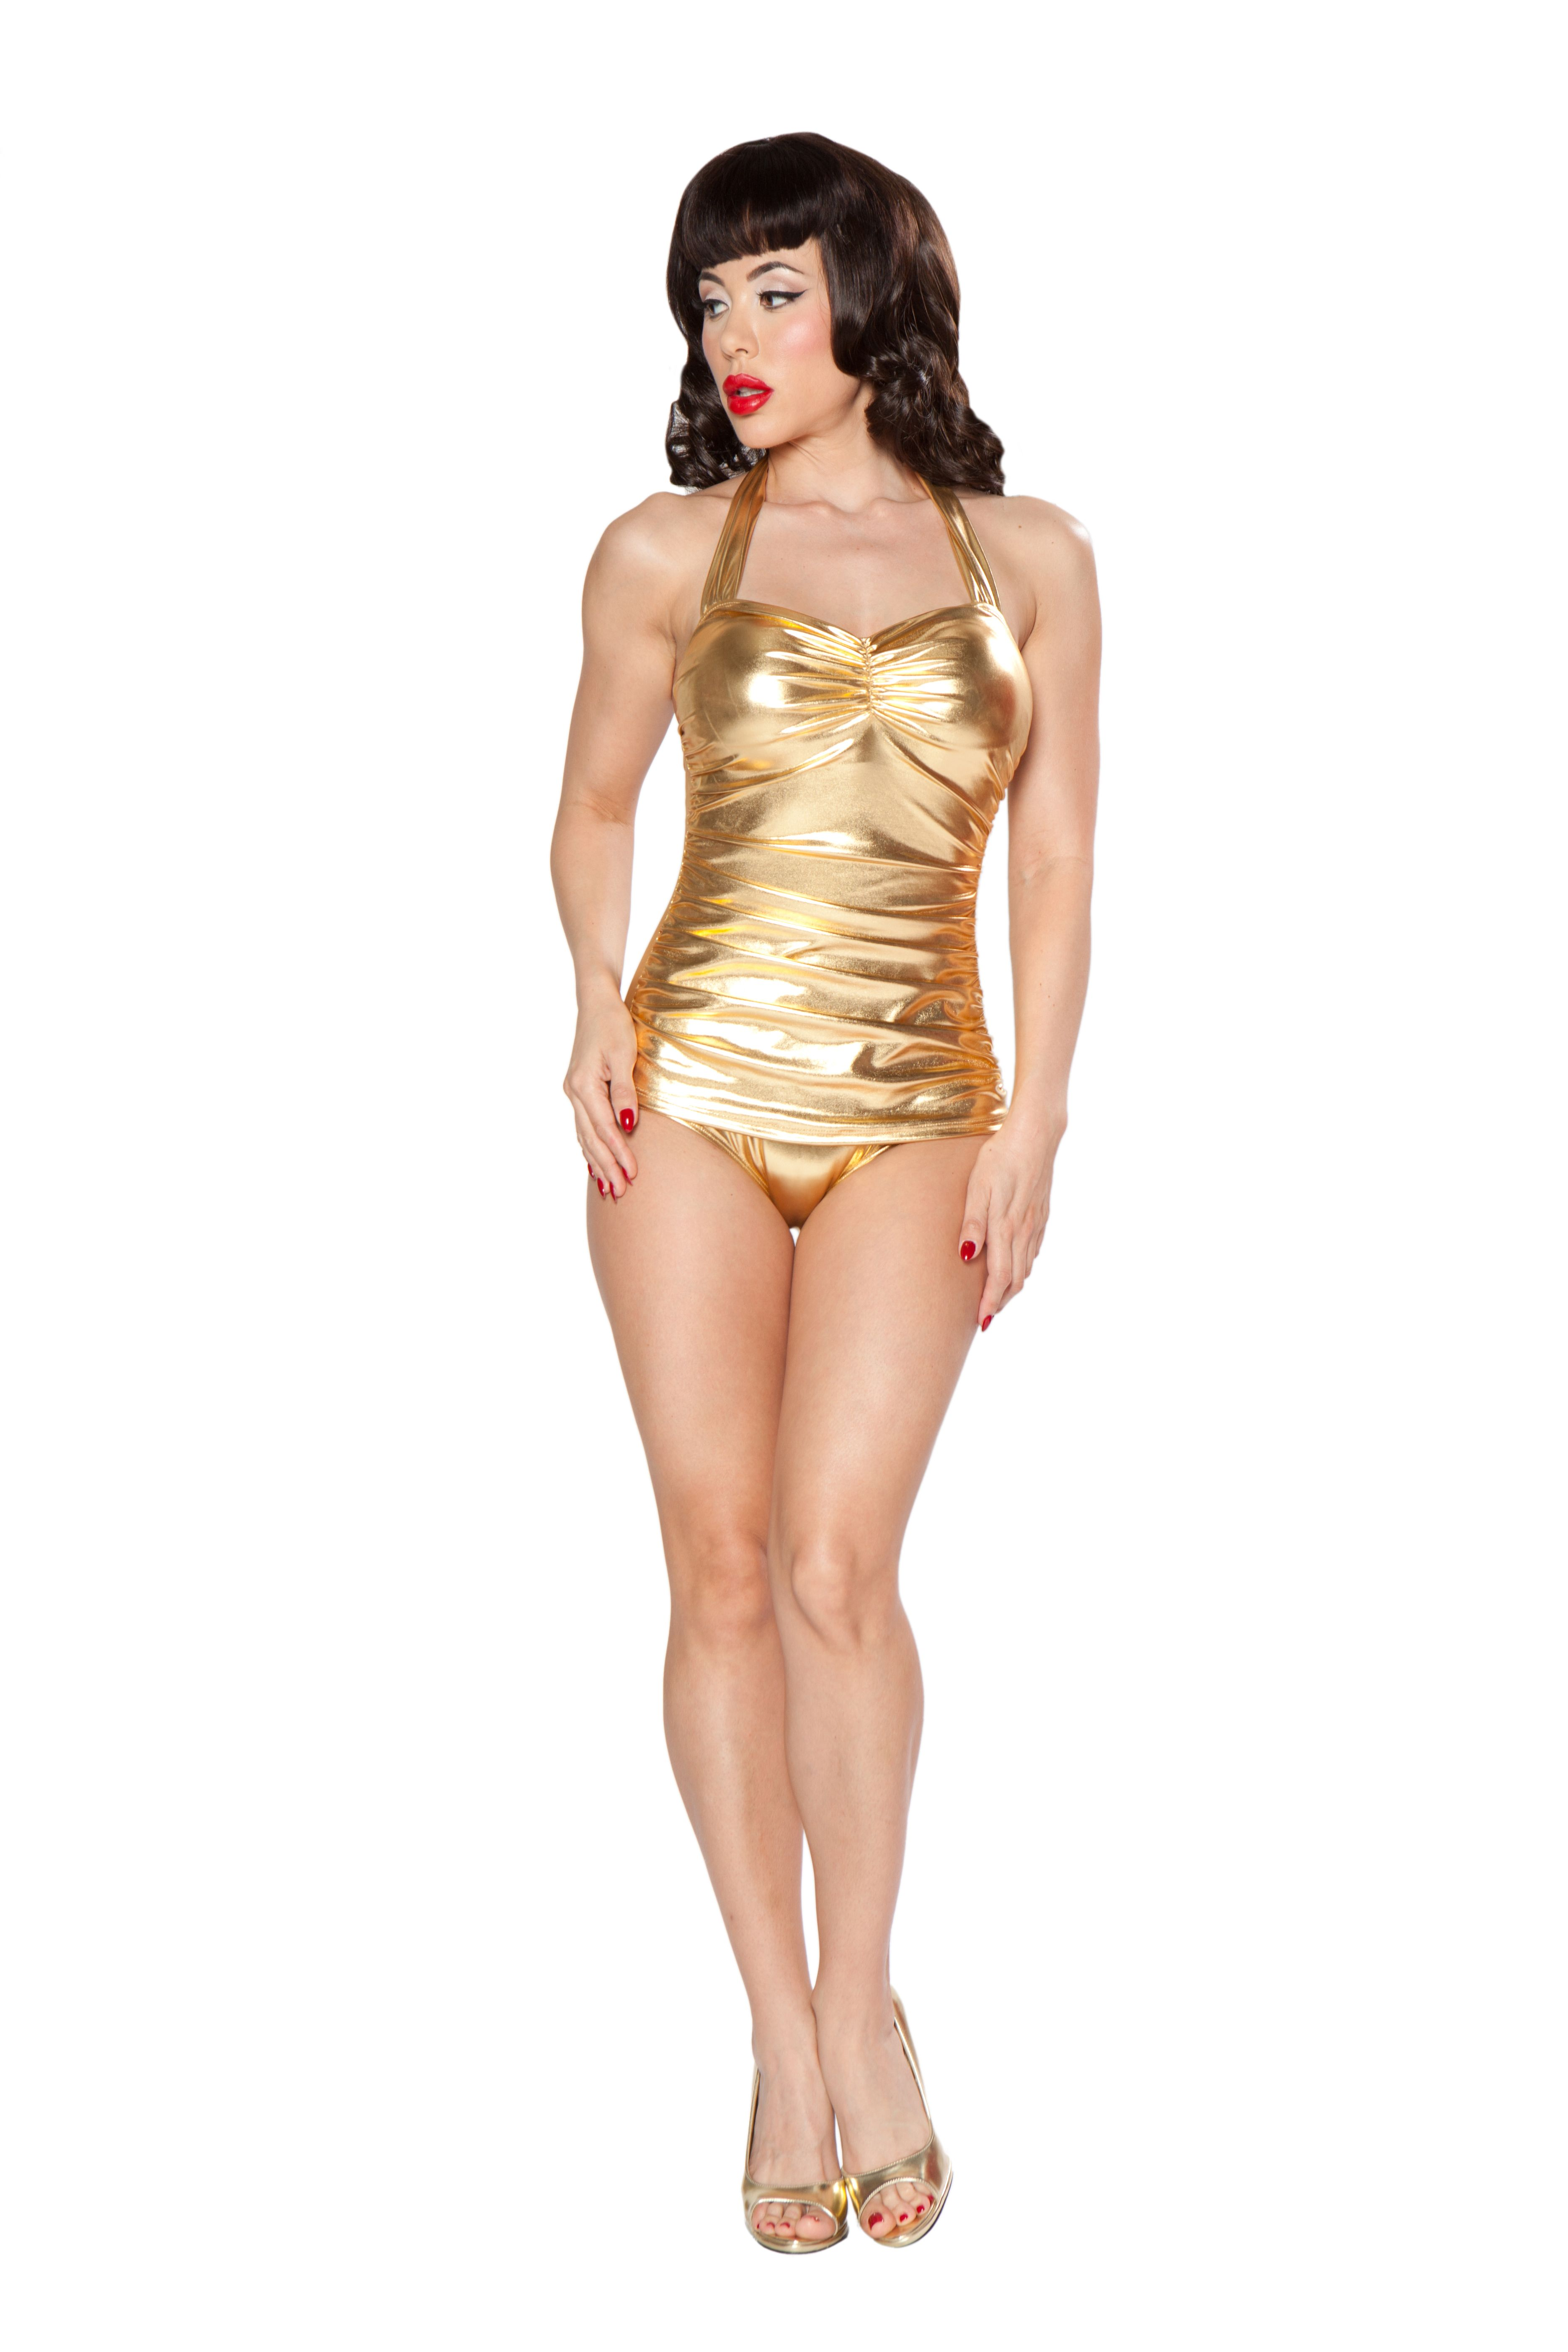 41b000cf25738 Esther Williams Classic Sheath Swimsuit in Glitz Gold - Dee Foreman ...